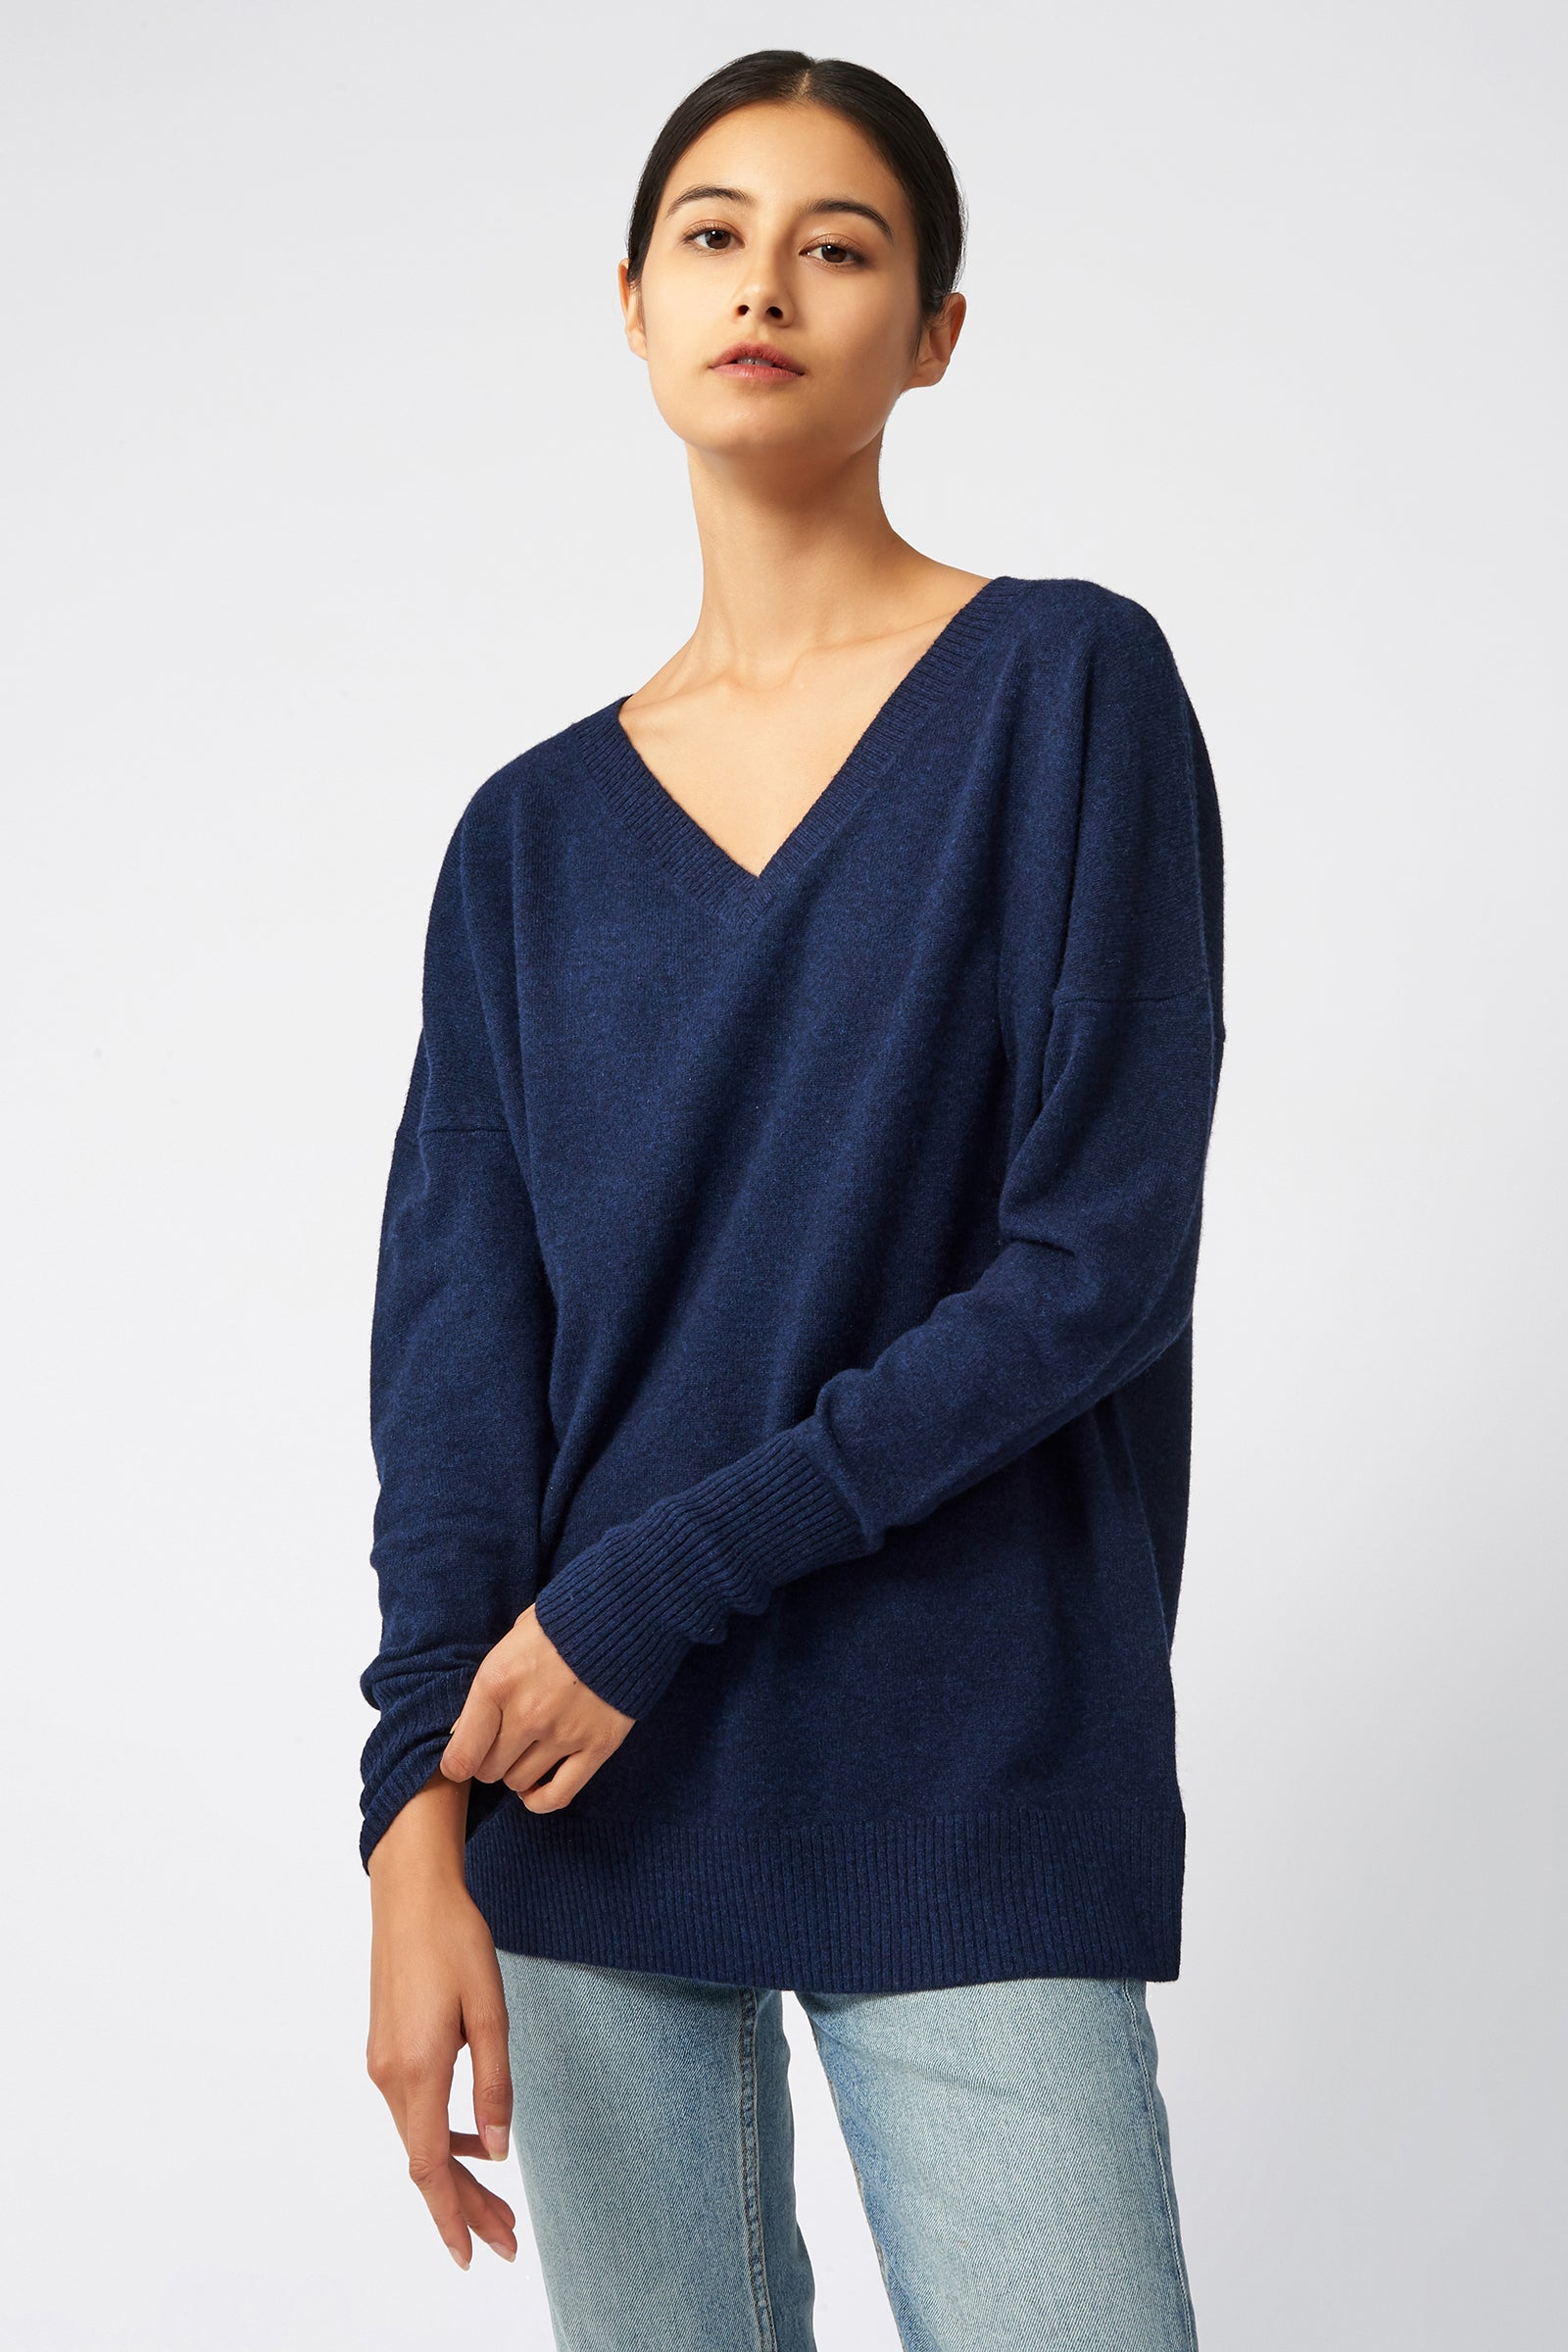 Kal Rieman Cashmere V Neck in Navy on Model Front View